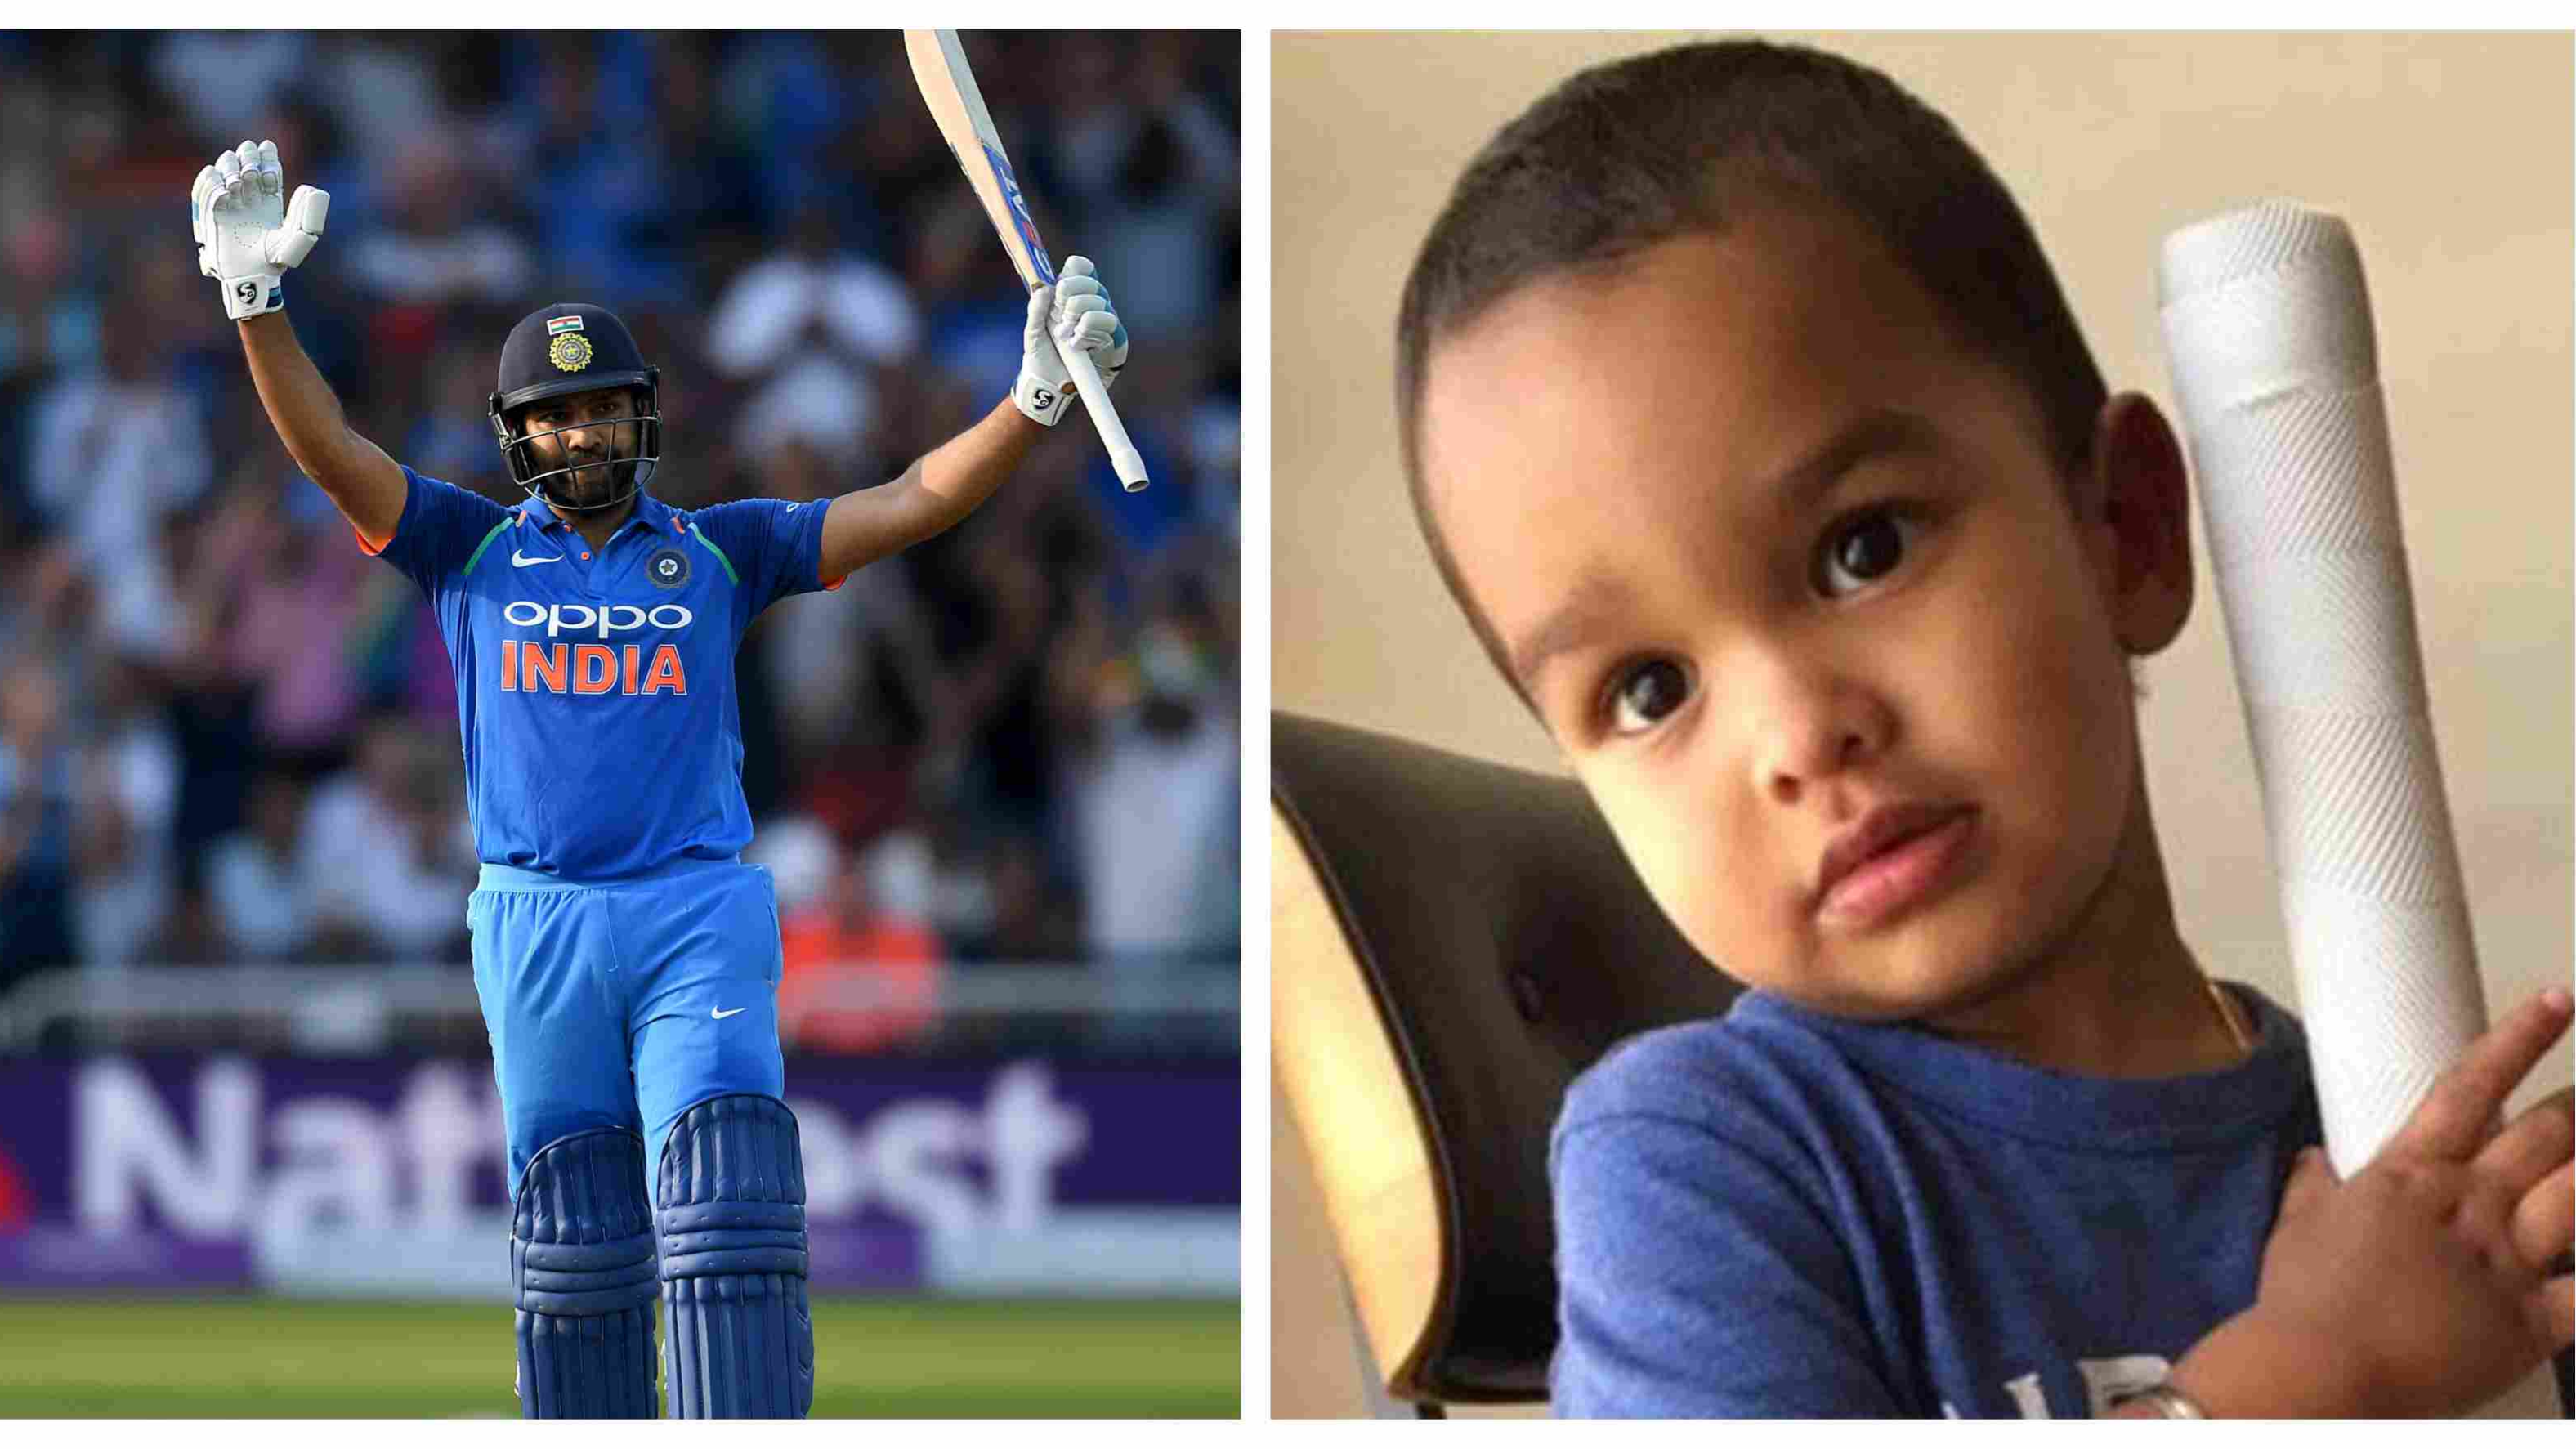 WATCH – Rohit Sharma's unique training with Shikhar Dhawan's son left social media in splits